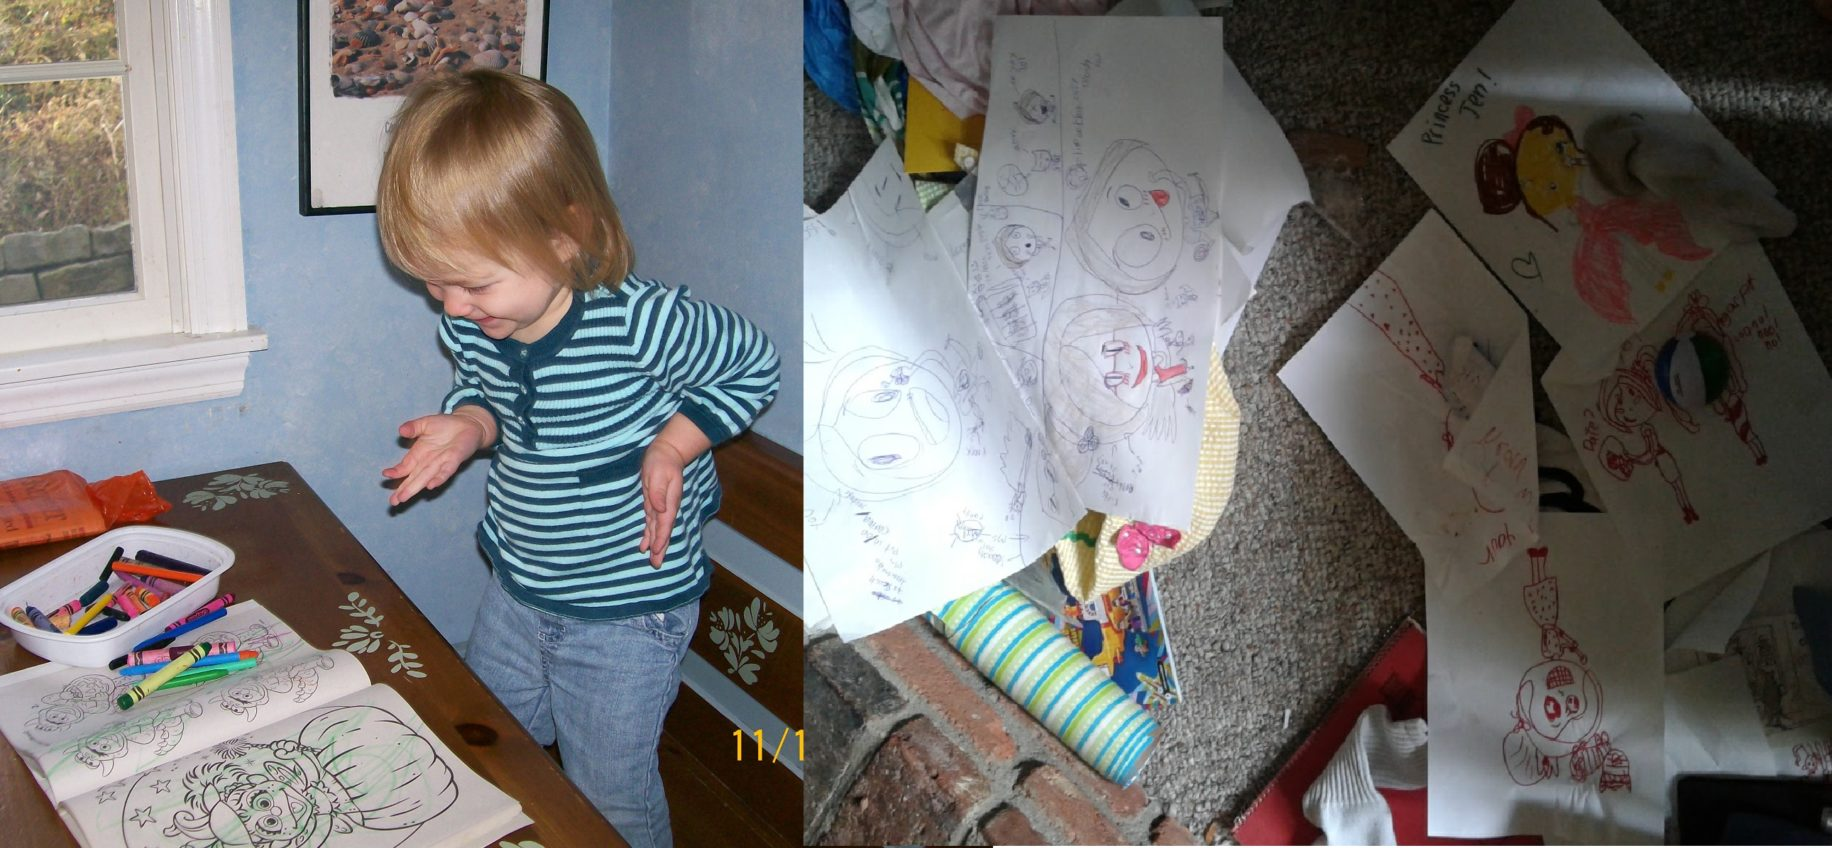 the author's daughter colors as a toddler and leaves a pile of drawings as an 8yo